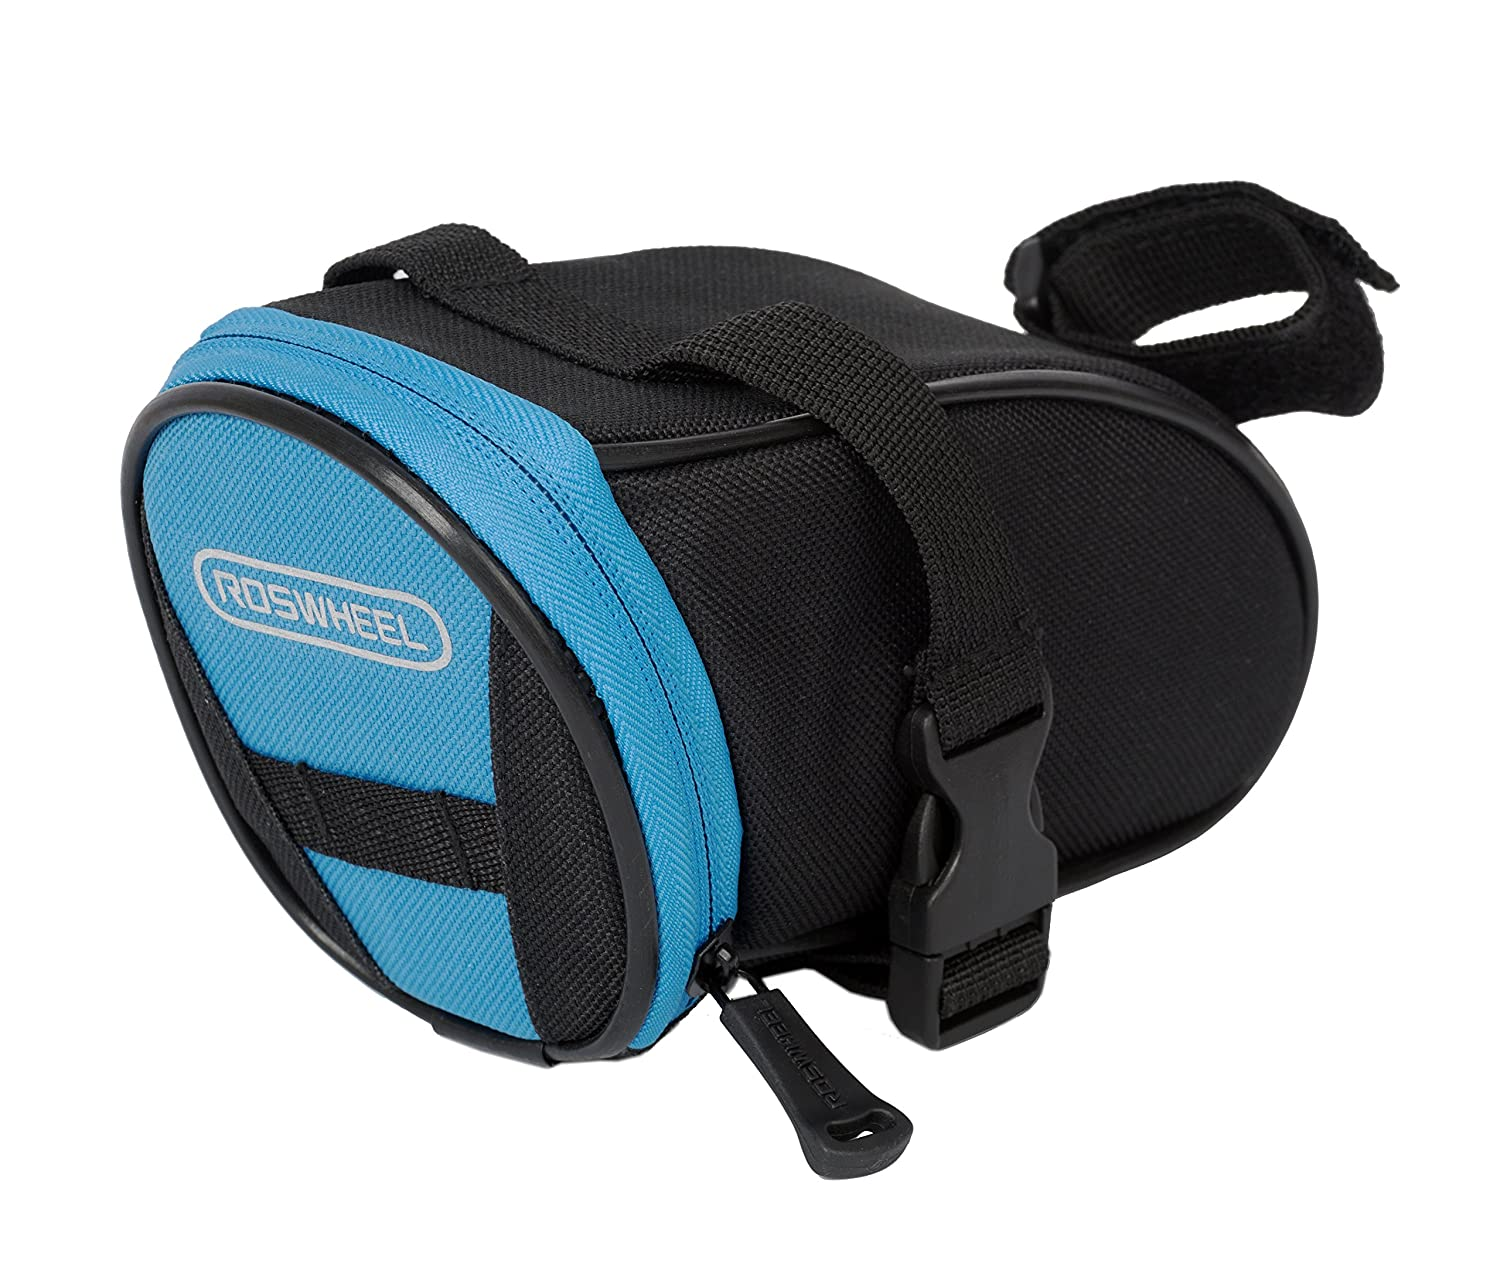 Roswheel Outdoor Cycling Bike Bicycle Saddle Bag Under Seat Packs Tail Pouch (Black-Blue-13656) by Roswheel B00JA7OACS